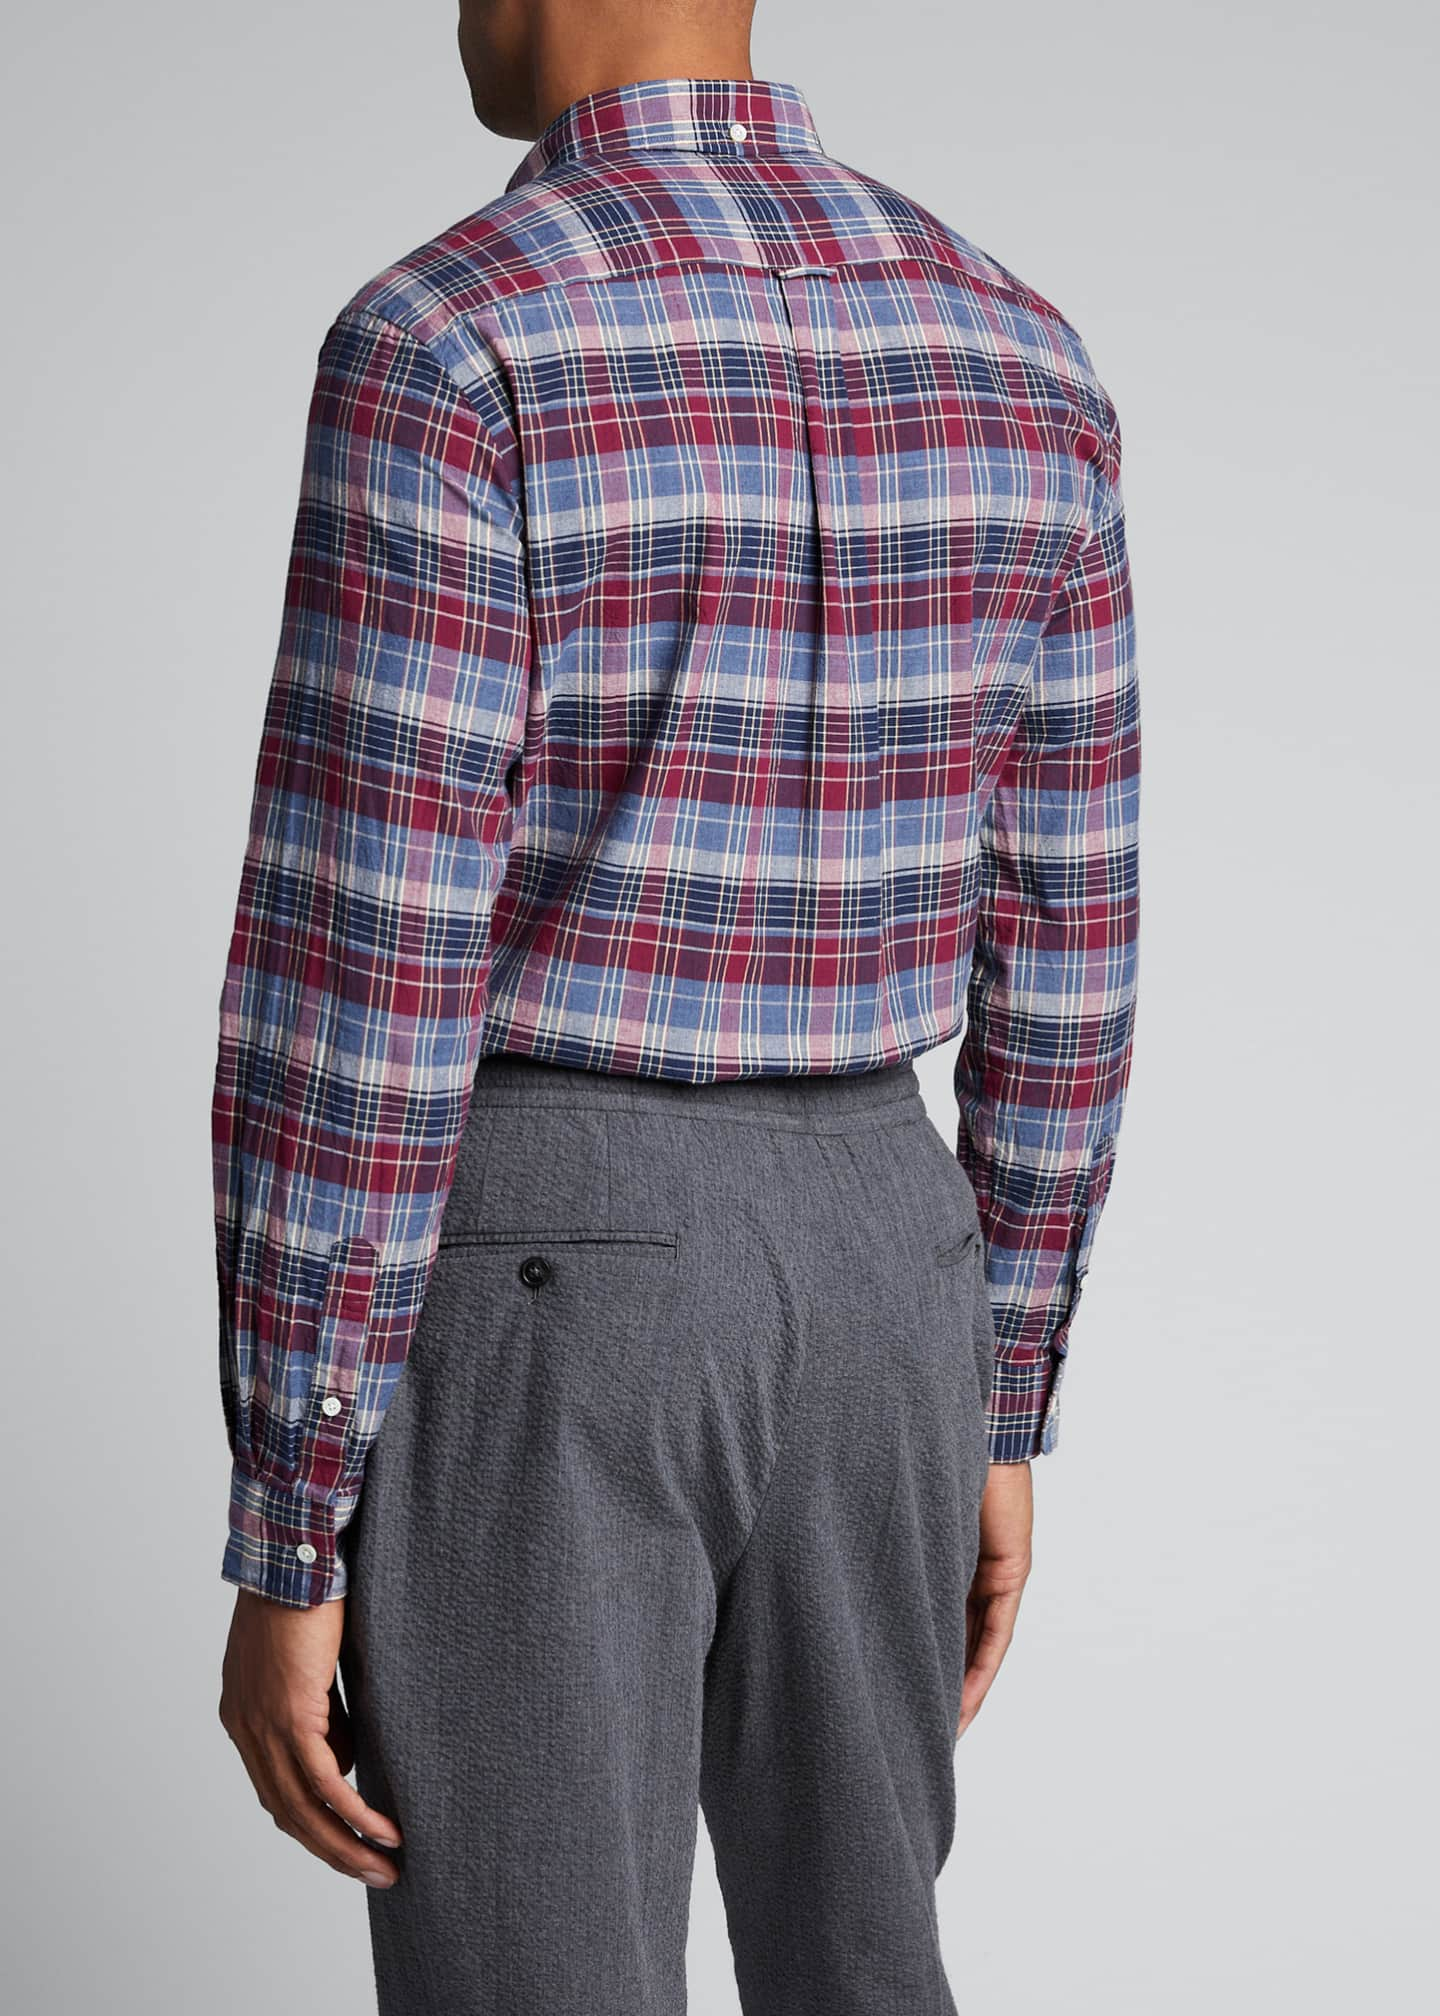 Image 2 of 5: Men's Madras Plaid Sport Shirt